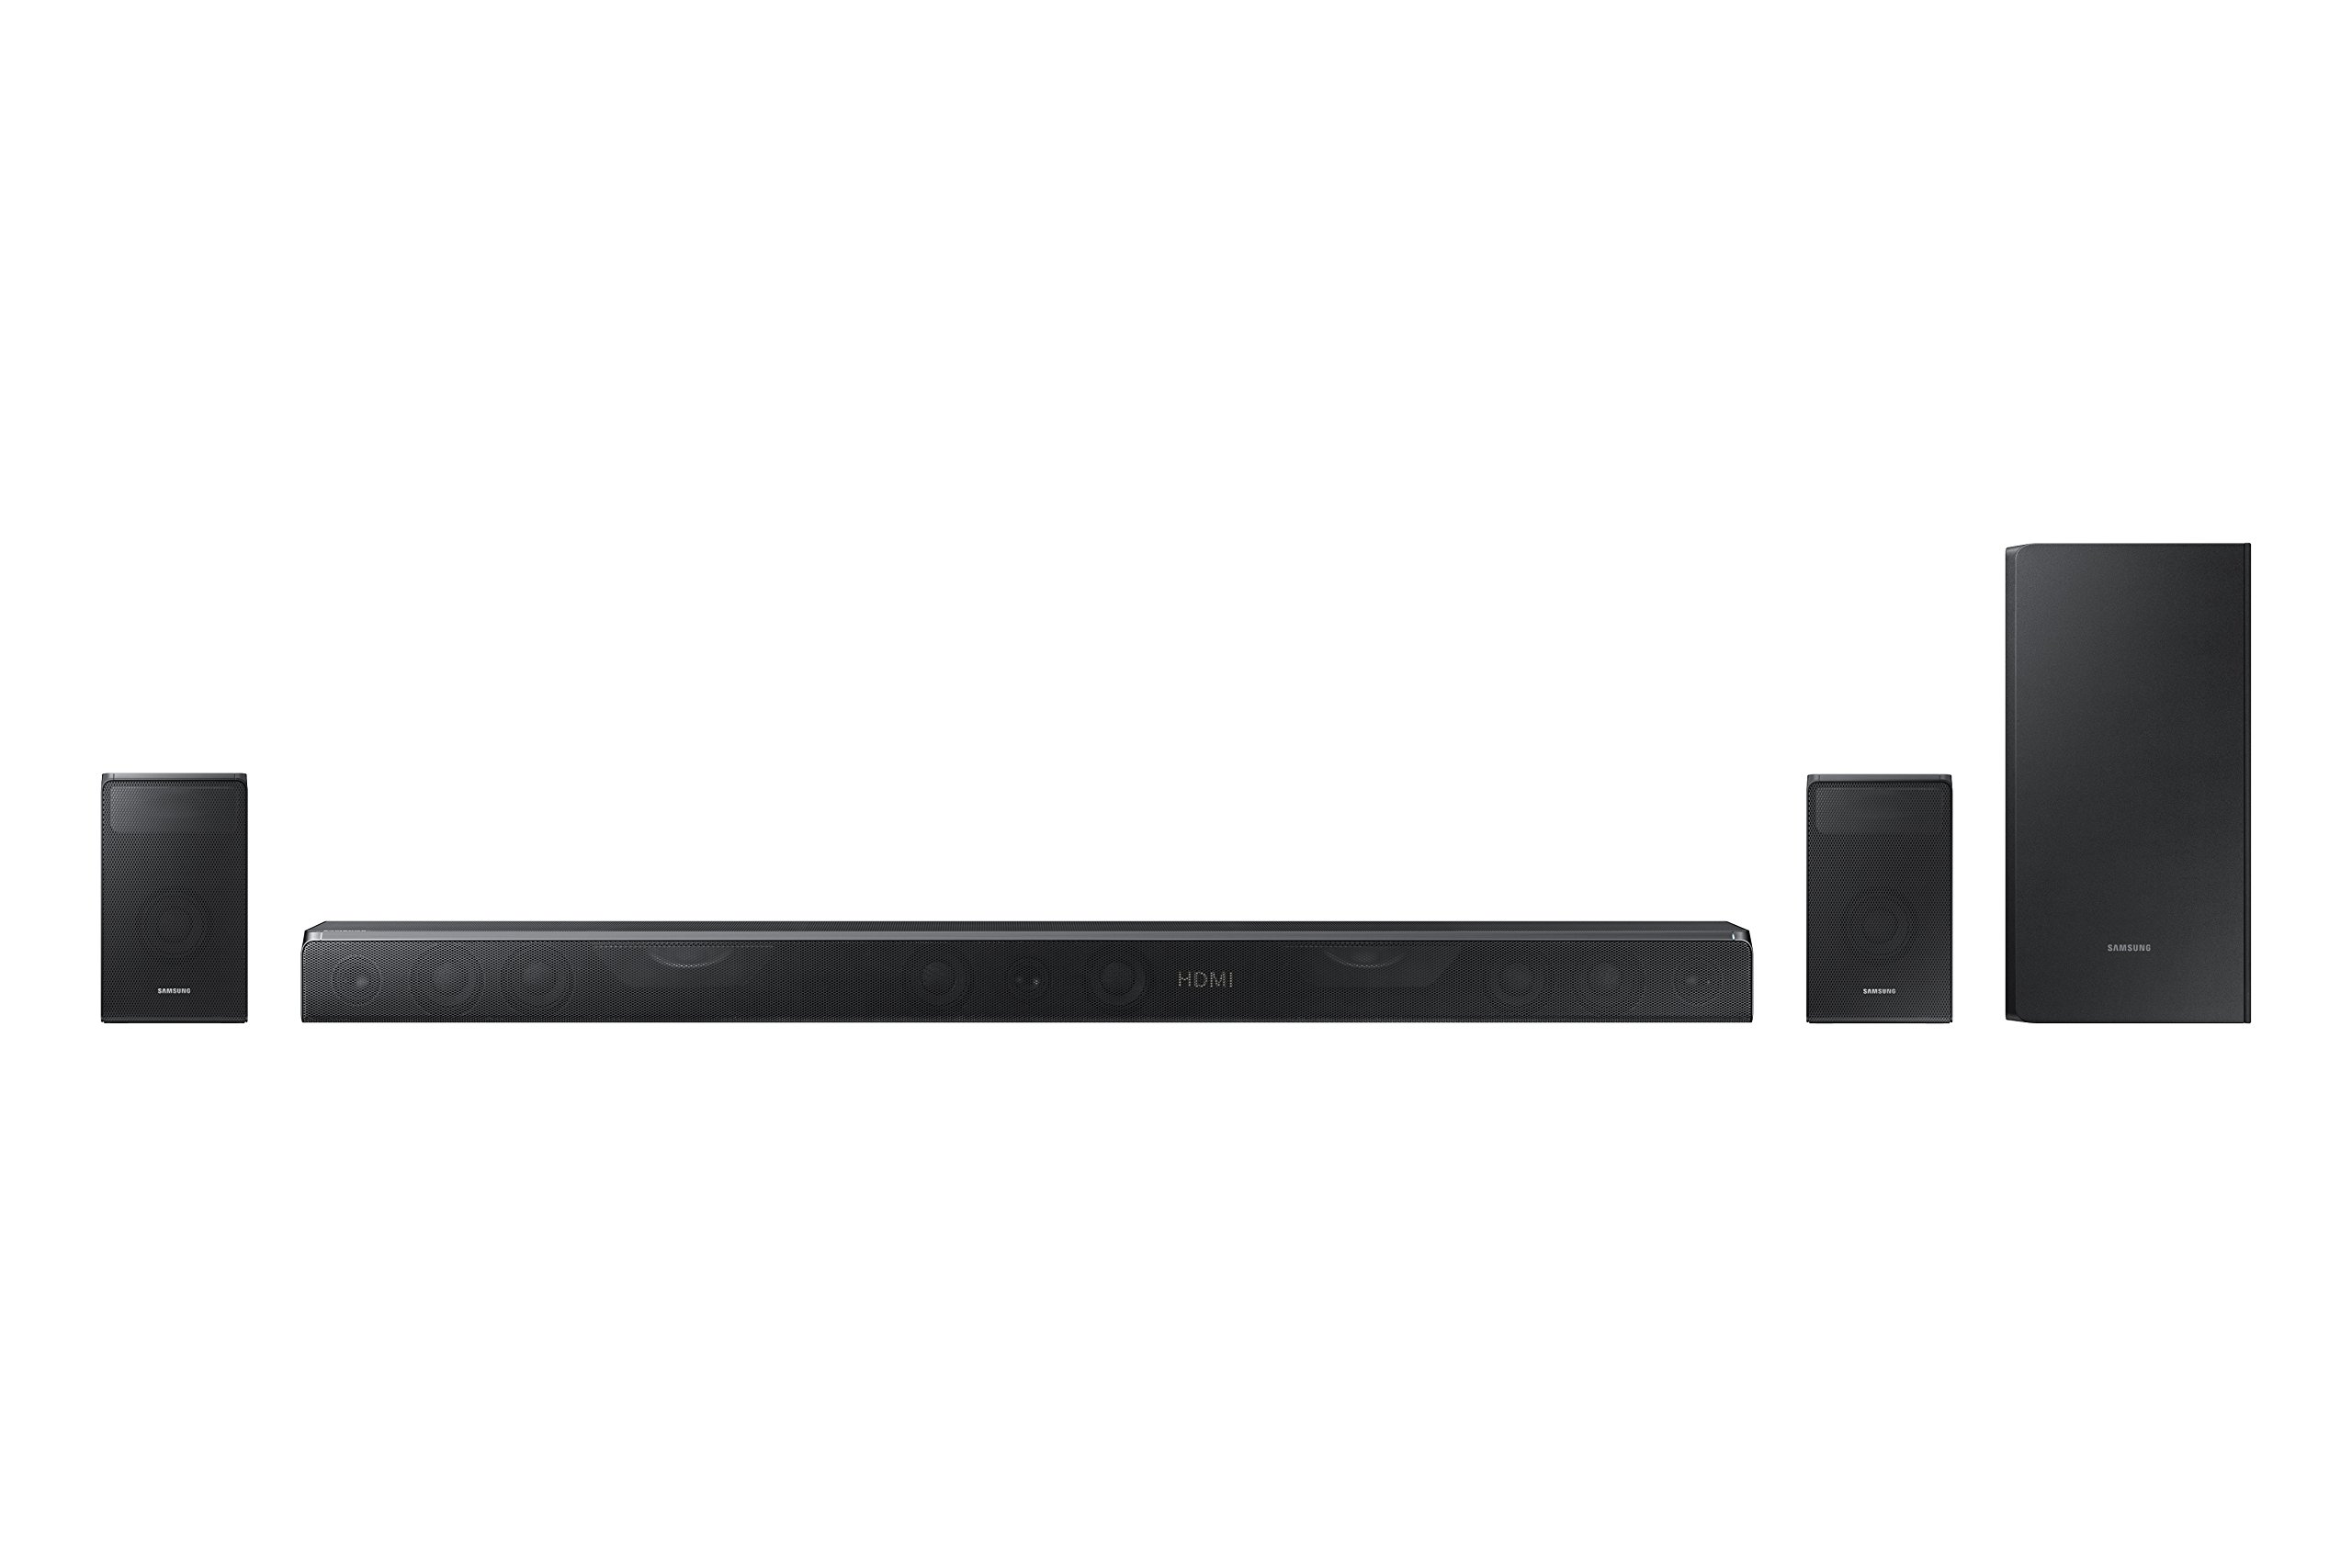 Samsung HW-K950/ZA 5.1.4 Channel Soundbar with Dolby Atmos Technology (2016 Model) by Samsung